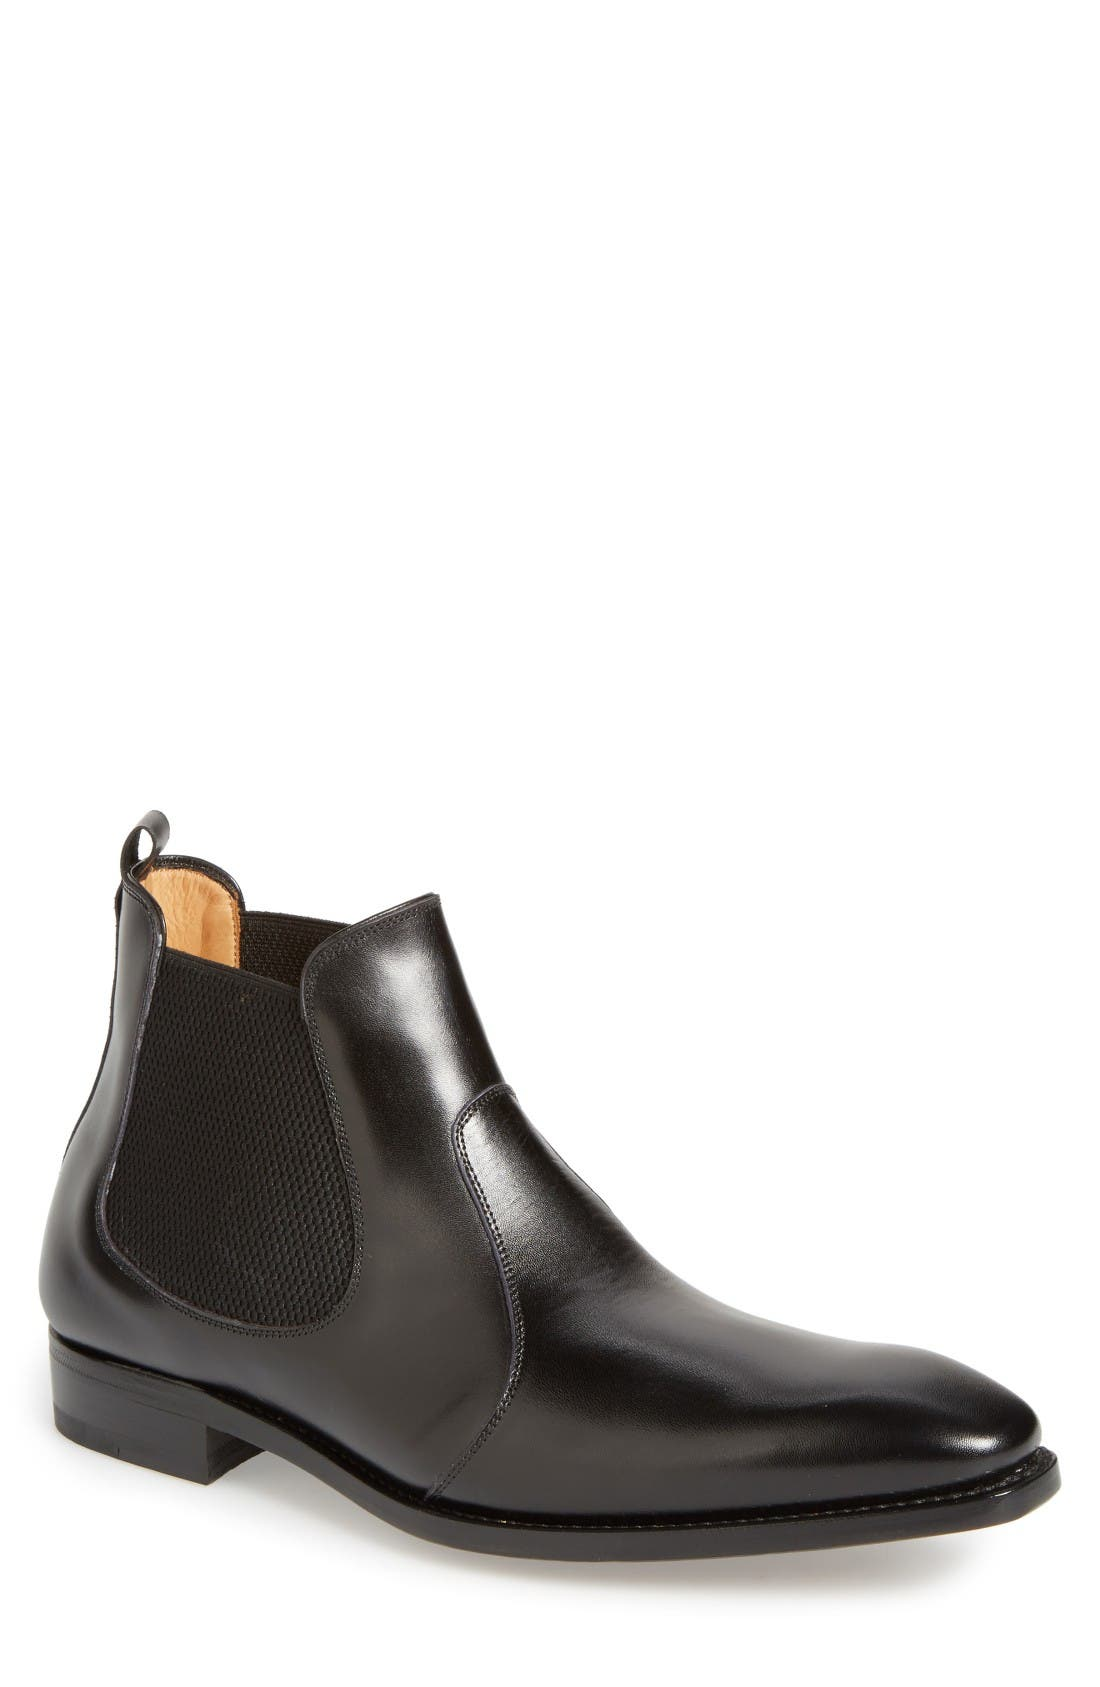 Main Image - Impronta by Mezlan G112 Chelsea Boot (Men)